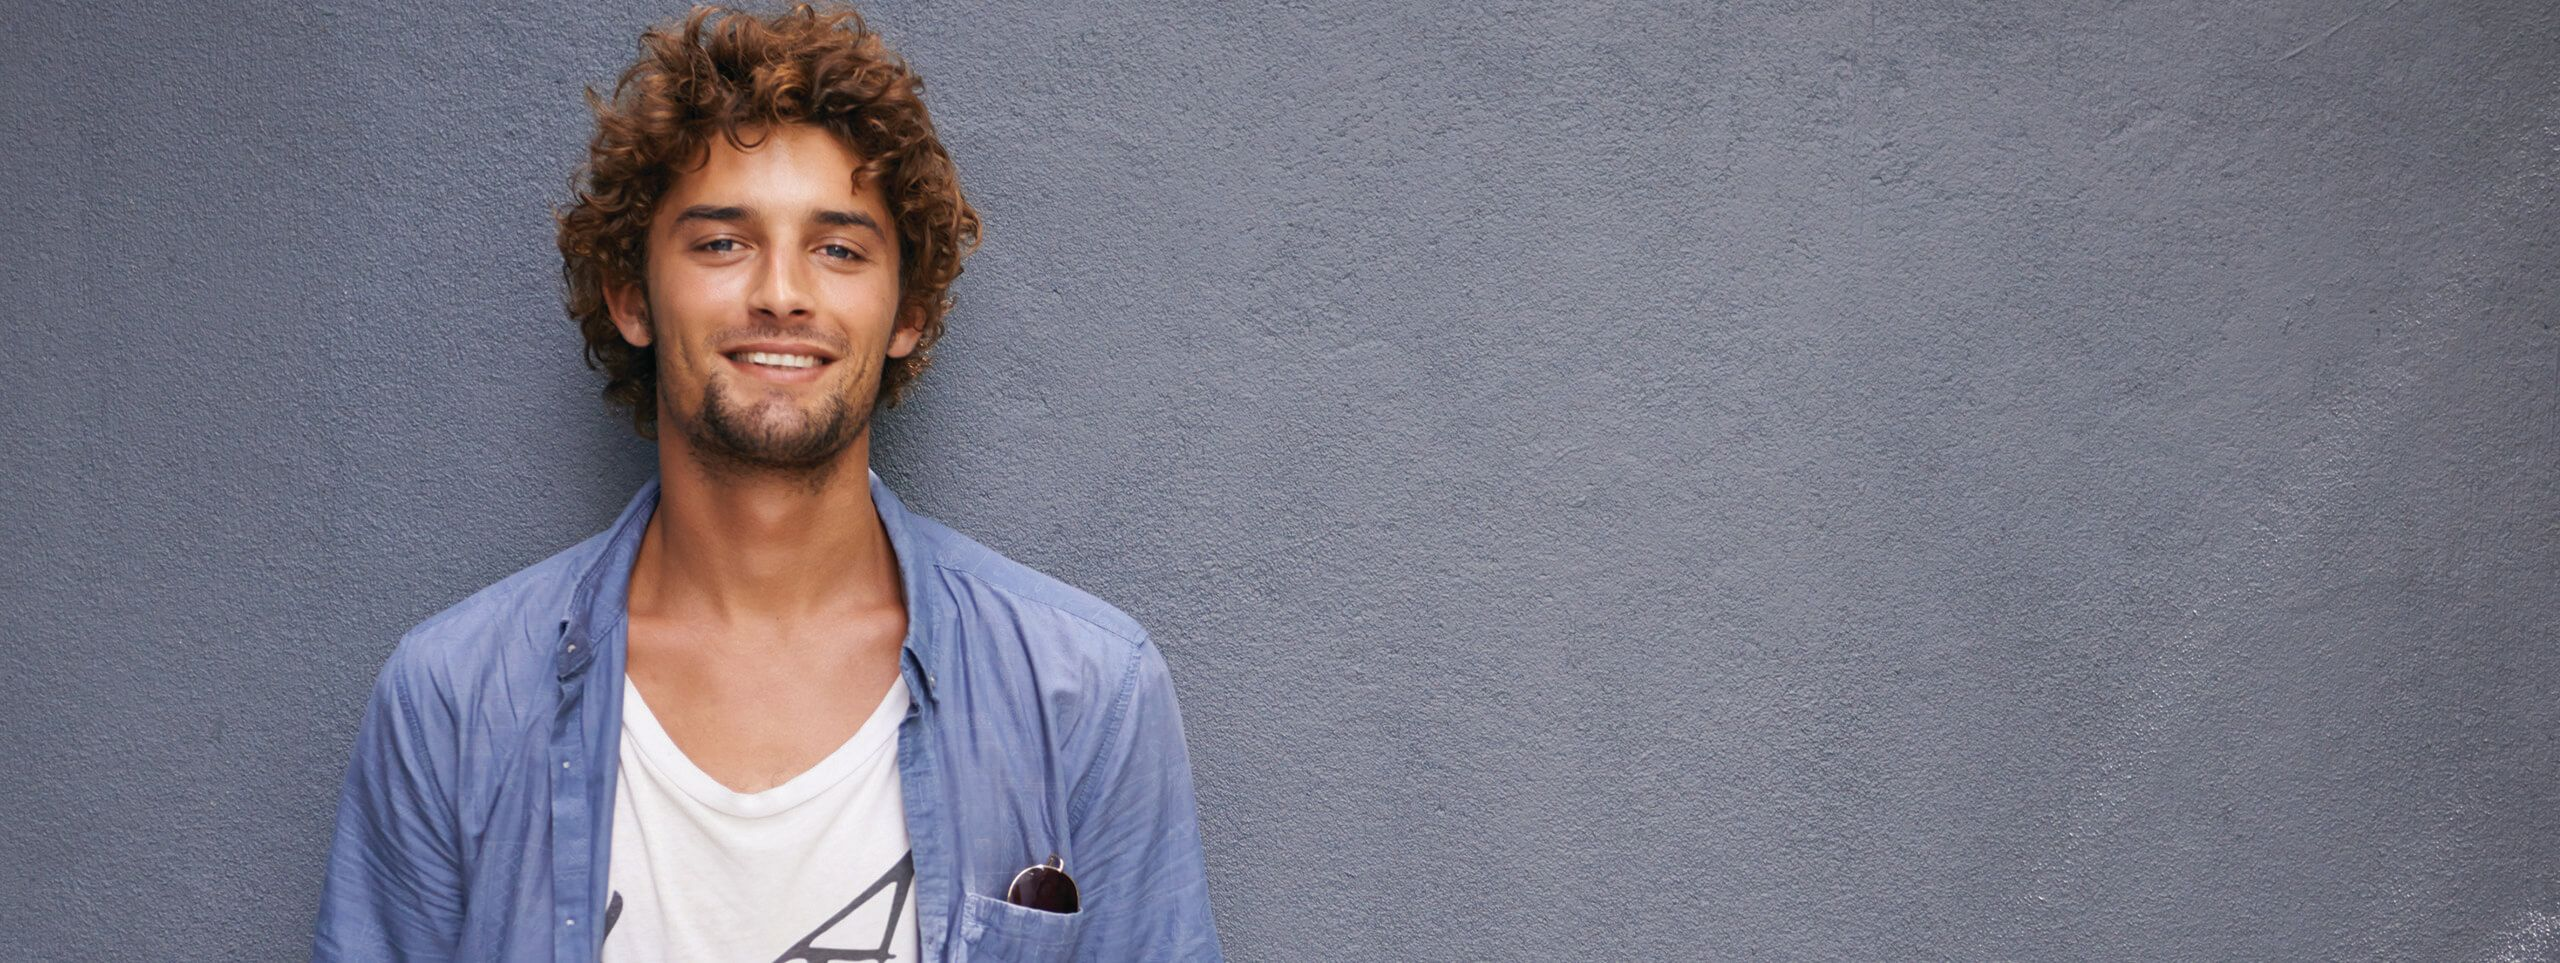 Male model with curly short hairstyle